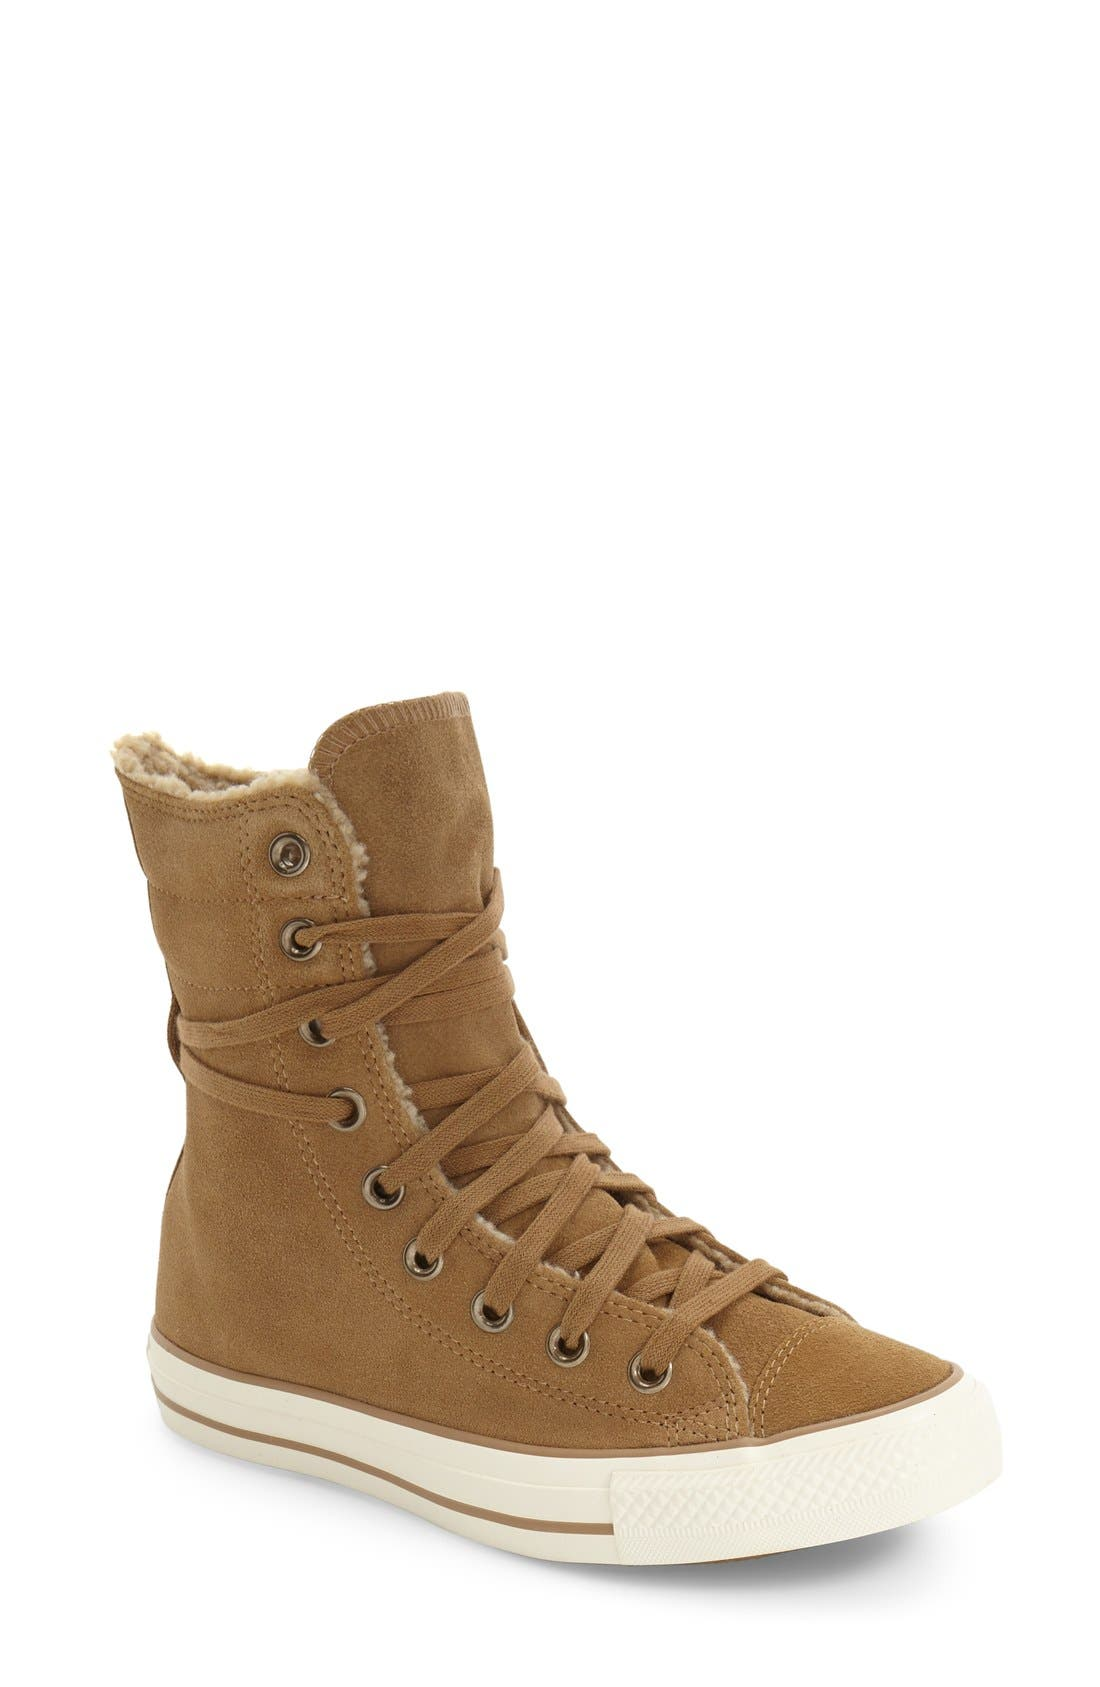 Alternate Image 1 Selected - Converse Chuck Taylor® All Star® High-Rise Sneaker (Women)